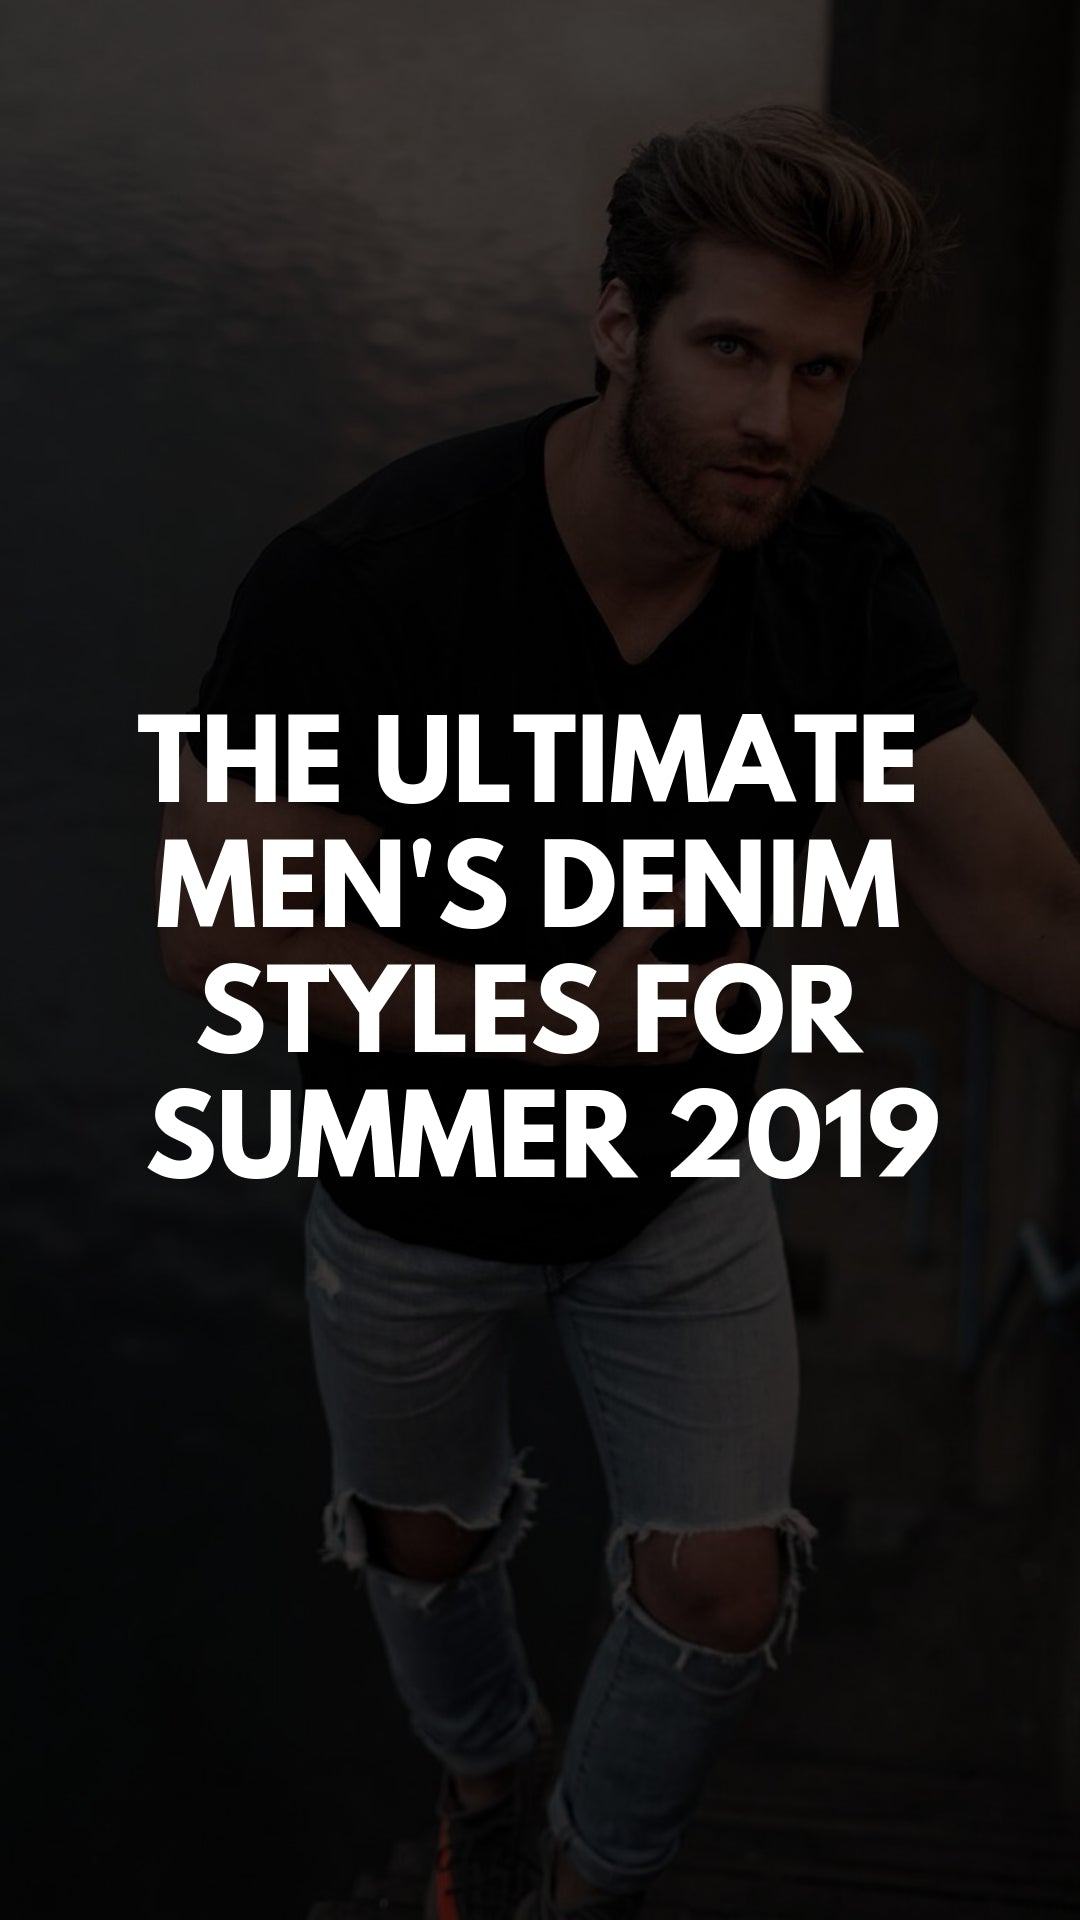 The Ultimate Men's Denim Styles for Summer 2019 #denim #style